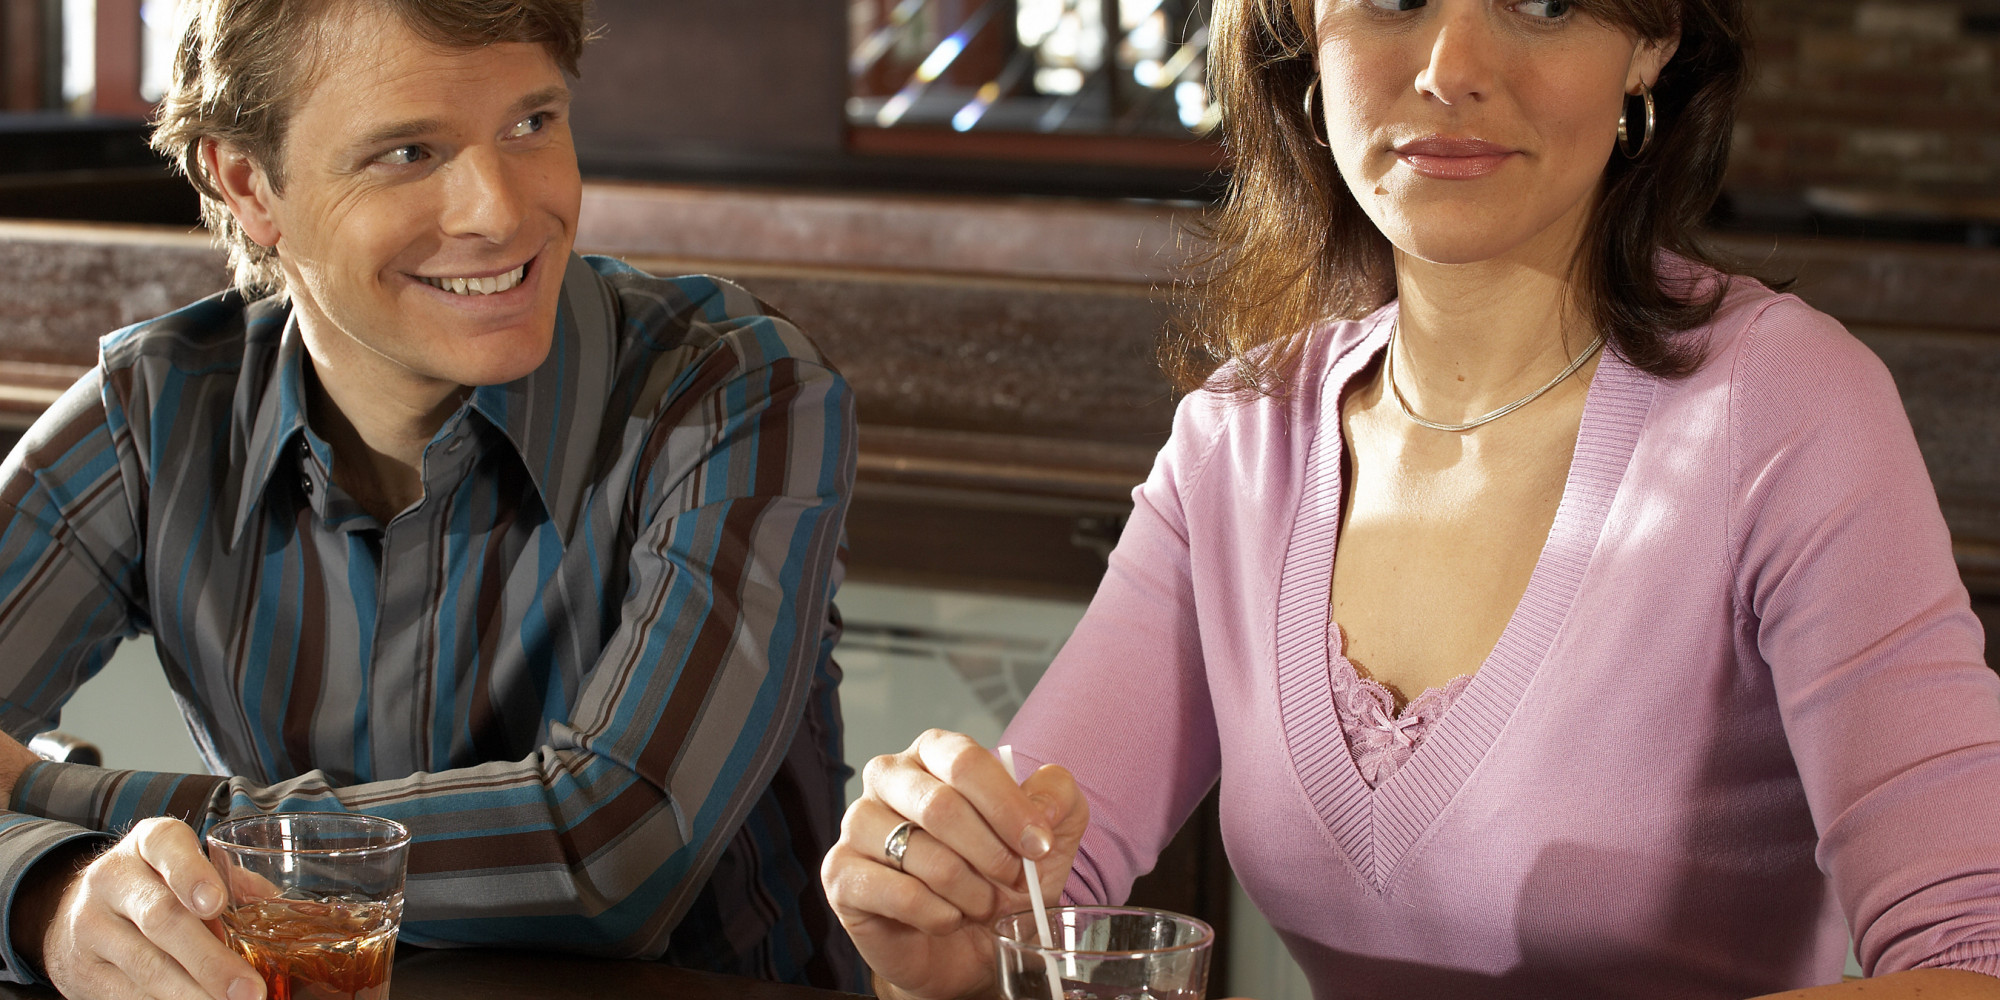 advice for dating divorced dads